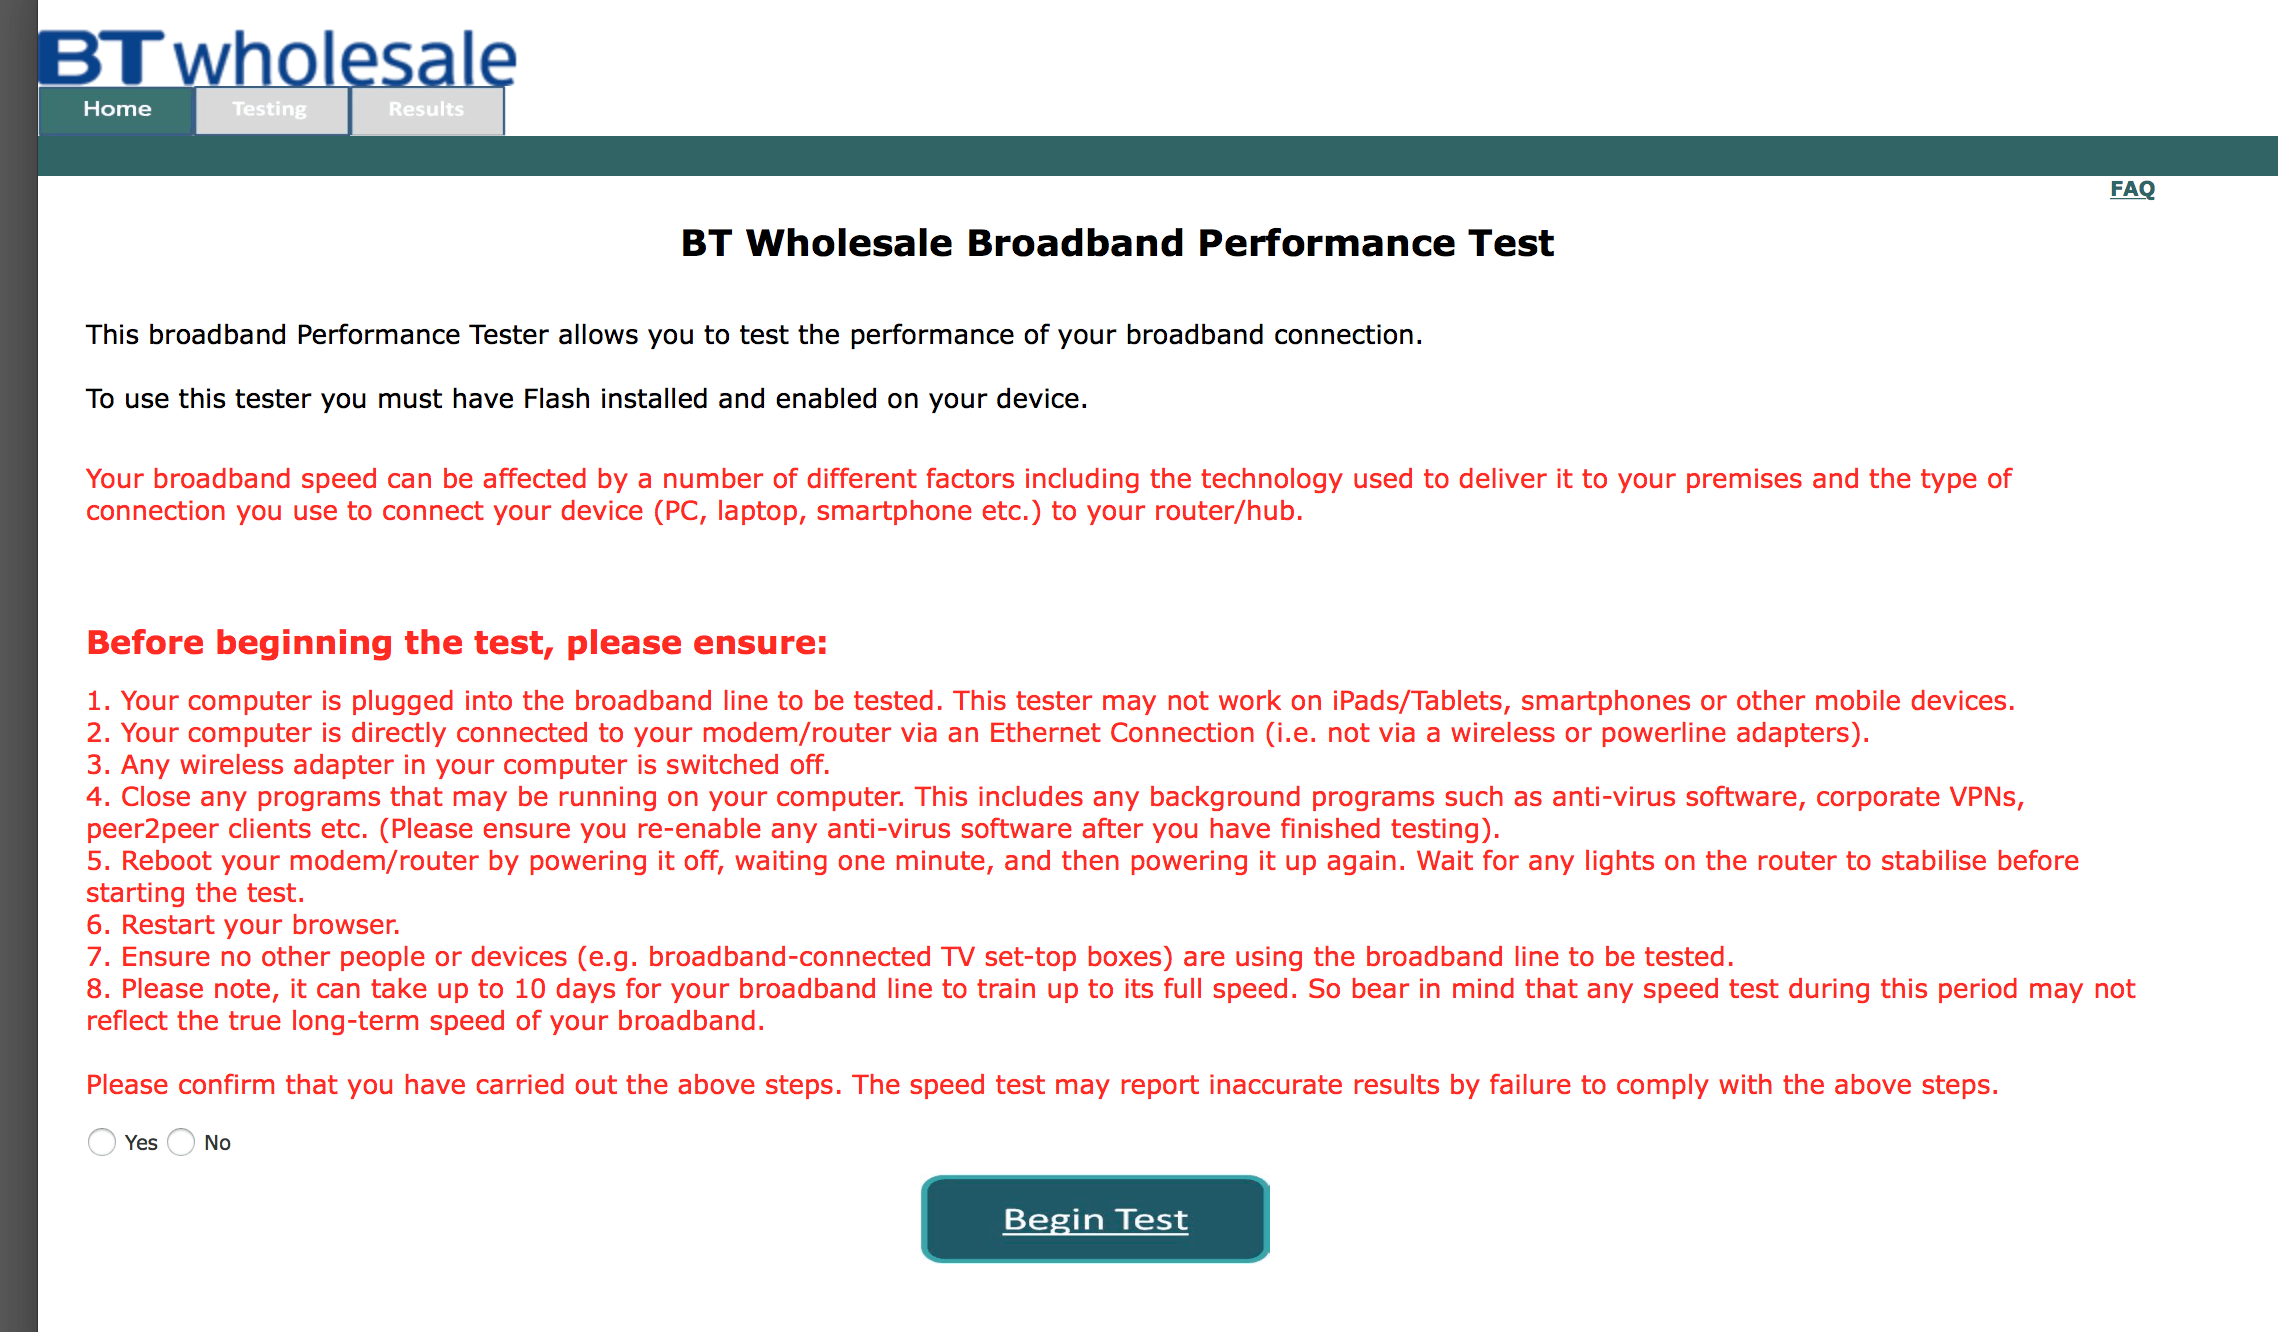 BT Wholesale Broadband Performance Test